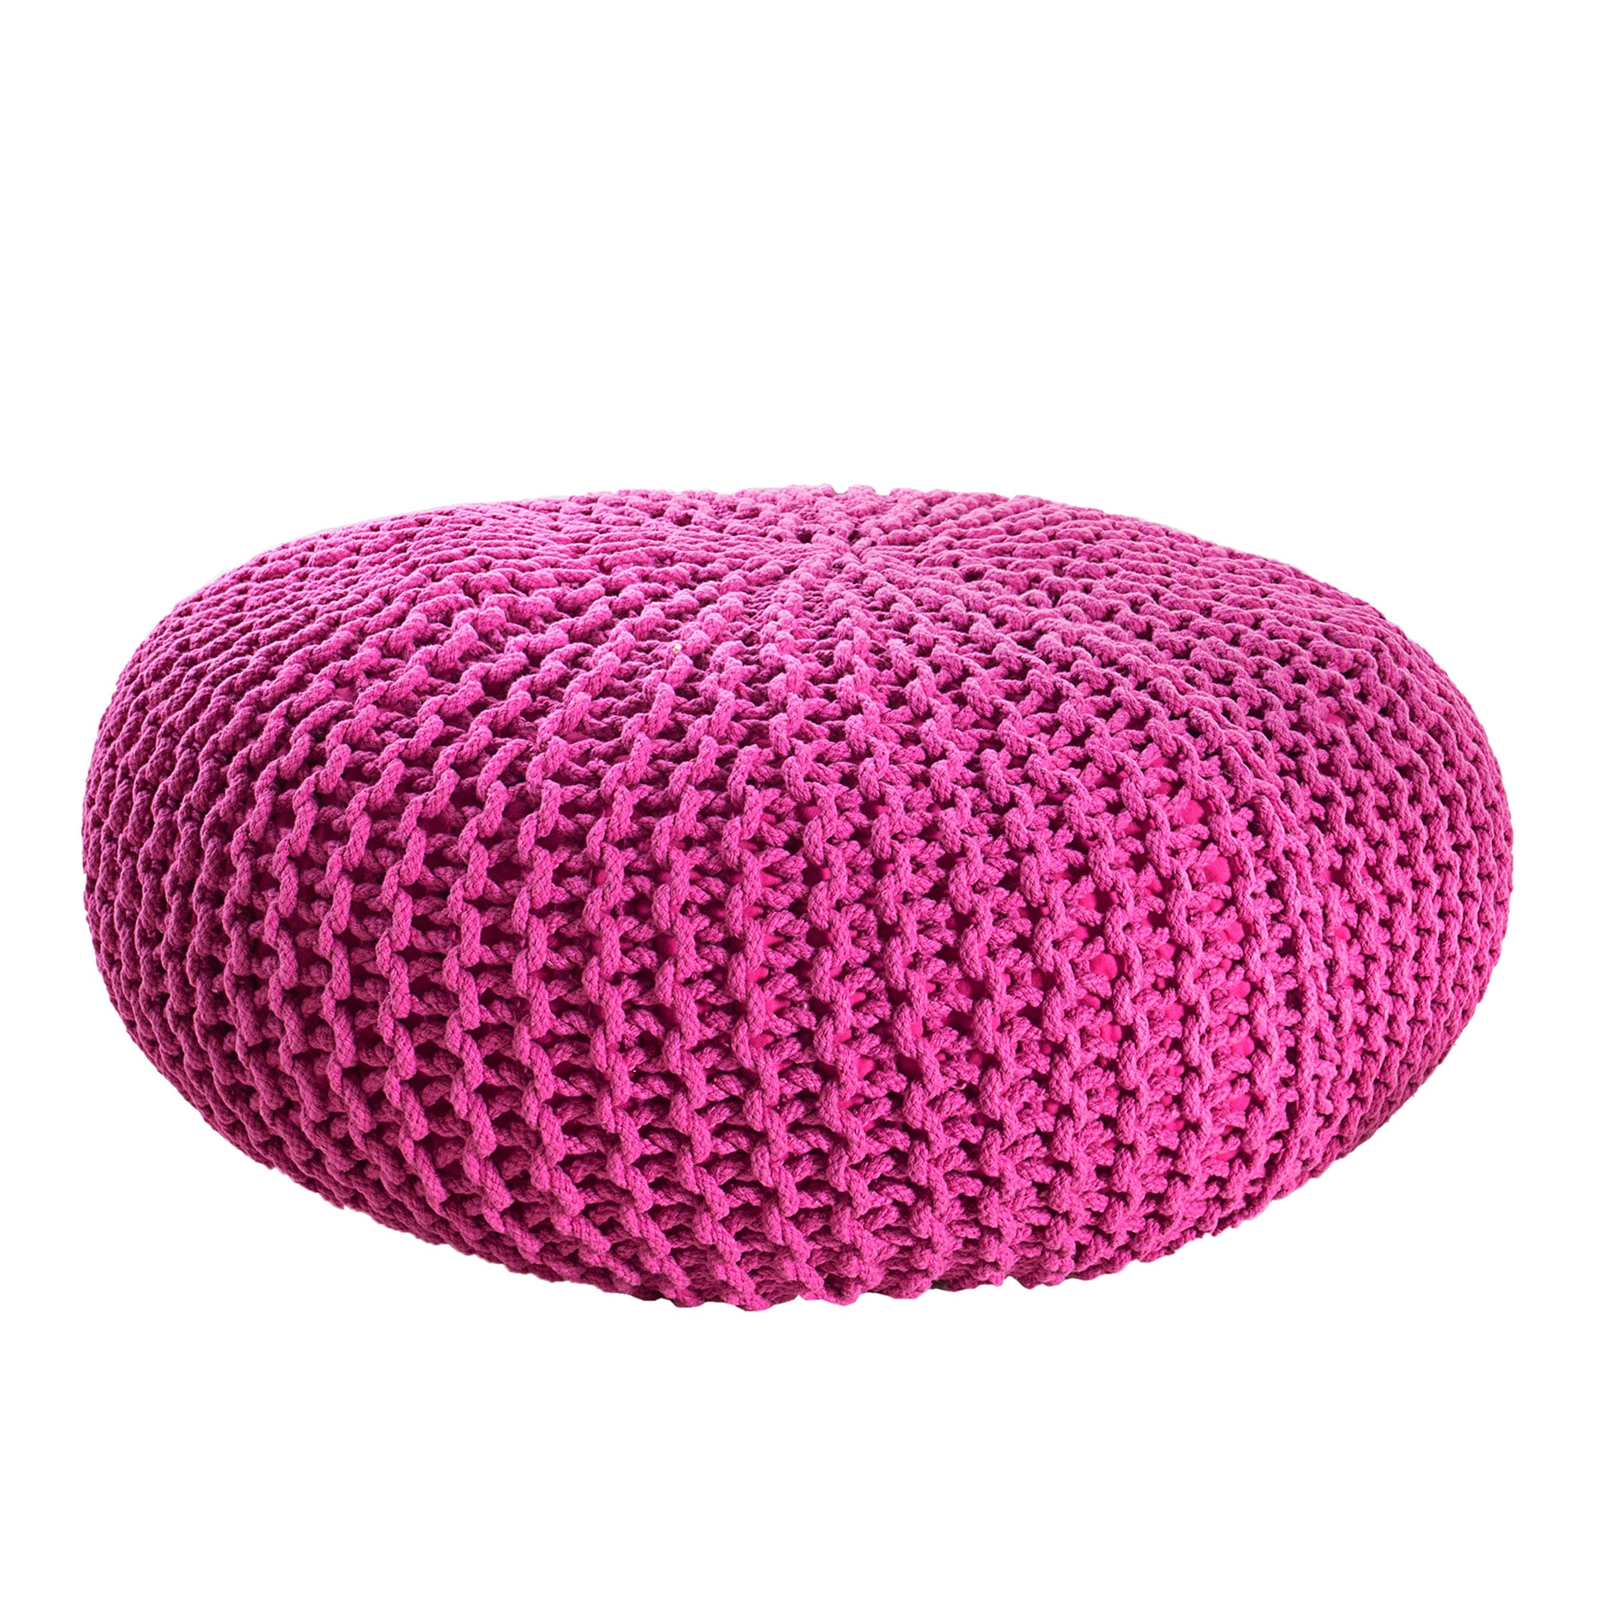 bequemer strick pouf liesel 50 cm pink baumwolle. Black Bedroom Furniture Sets. Home Design Ideas